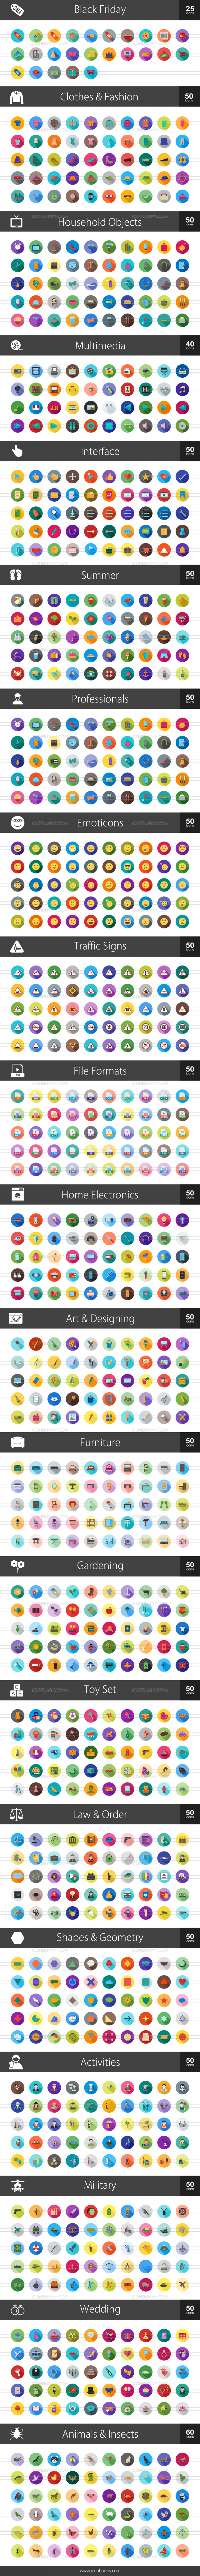 1025 Flat Shadowed Icons Bundle - Preview - IconBunny